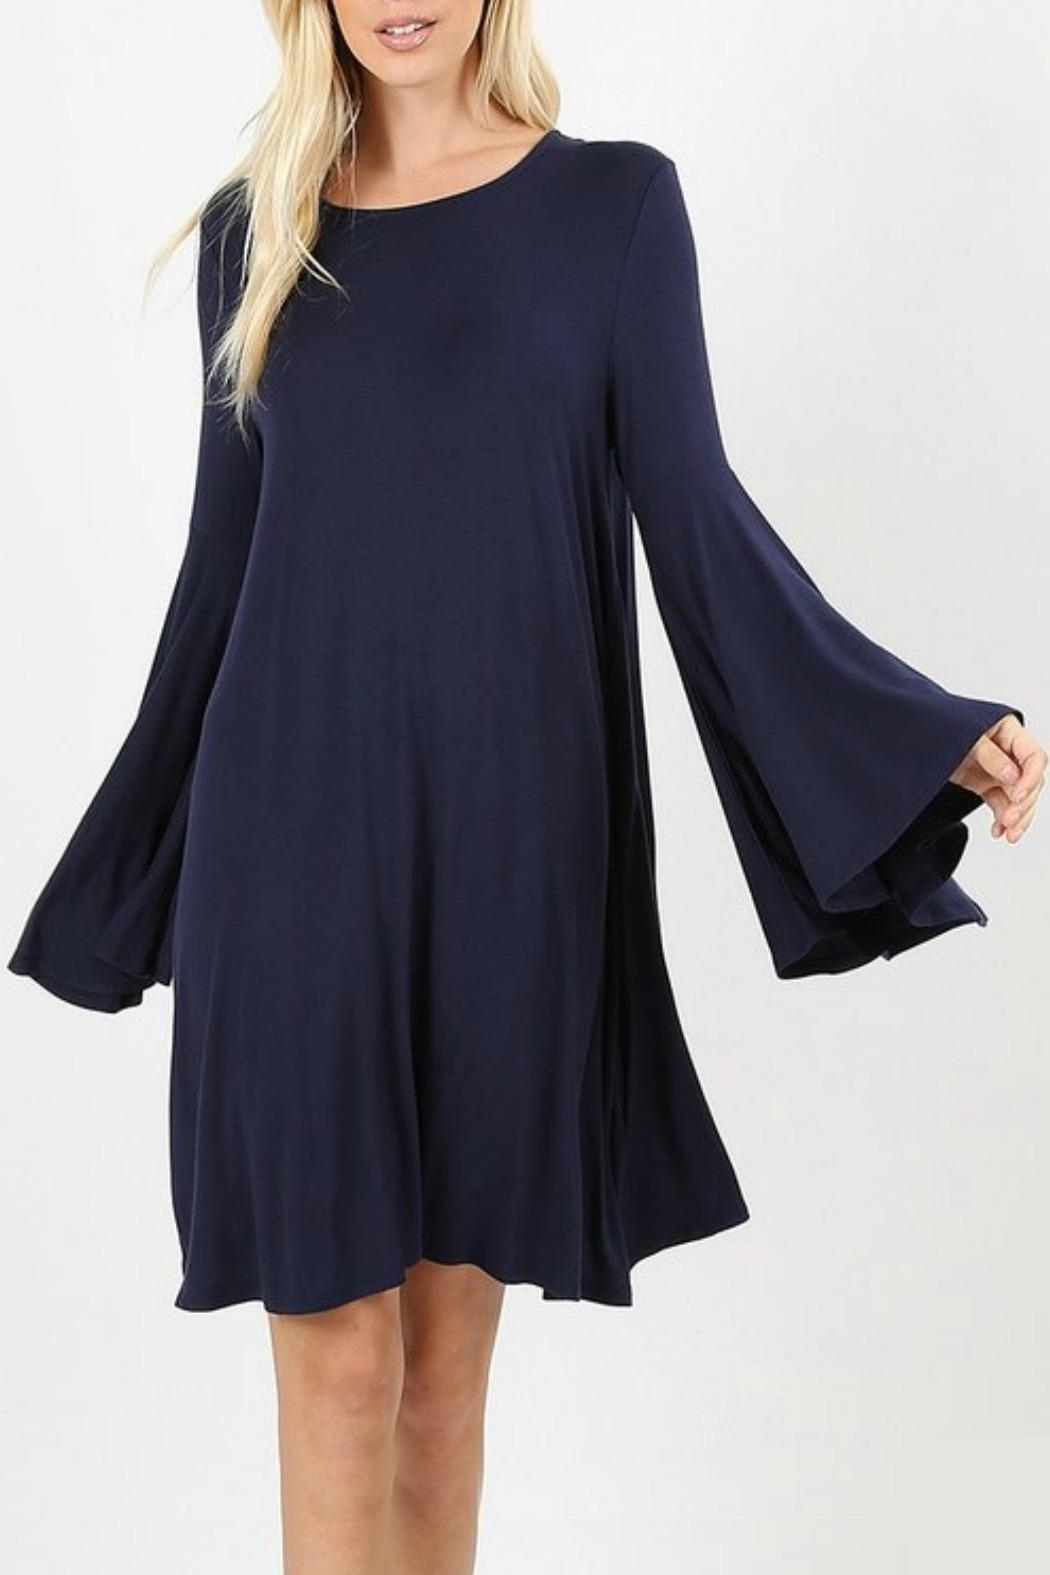 Zenana Outfitters Tory T-Shirt Dress - Front Cropped Image